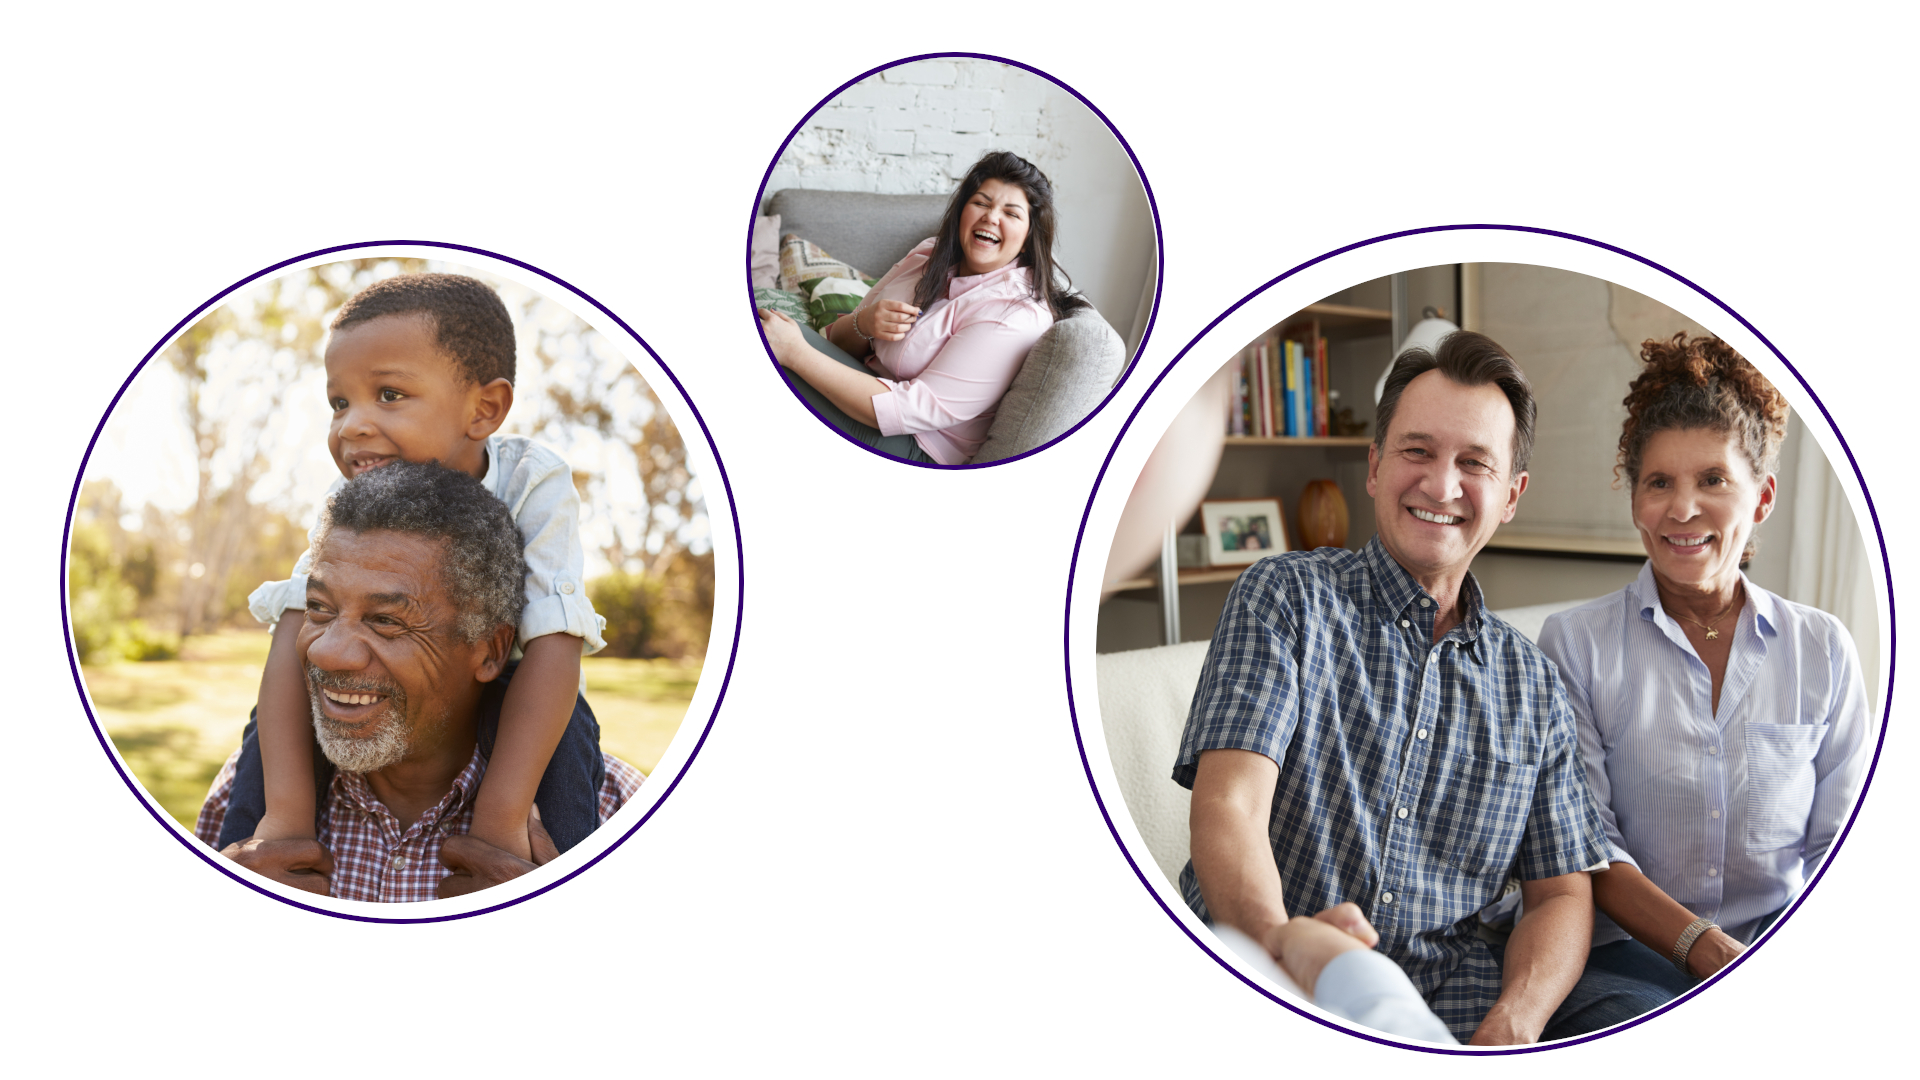 Counseling For Individuals, Counseling For Couples, Counseling In Spanish, Counseling For Older Adults, Counseling For Senior Adults, Counseling For Young Adults, Counseling For Women, Counseling For Men, Counseling For Families, Counseling For Children And Adolescents